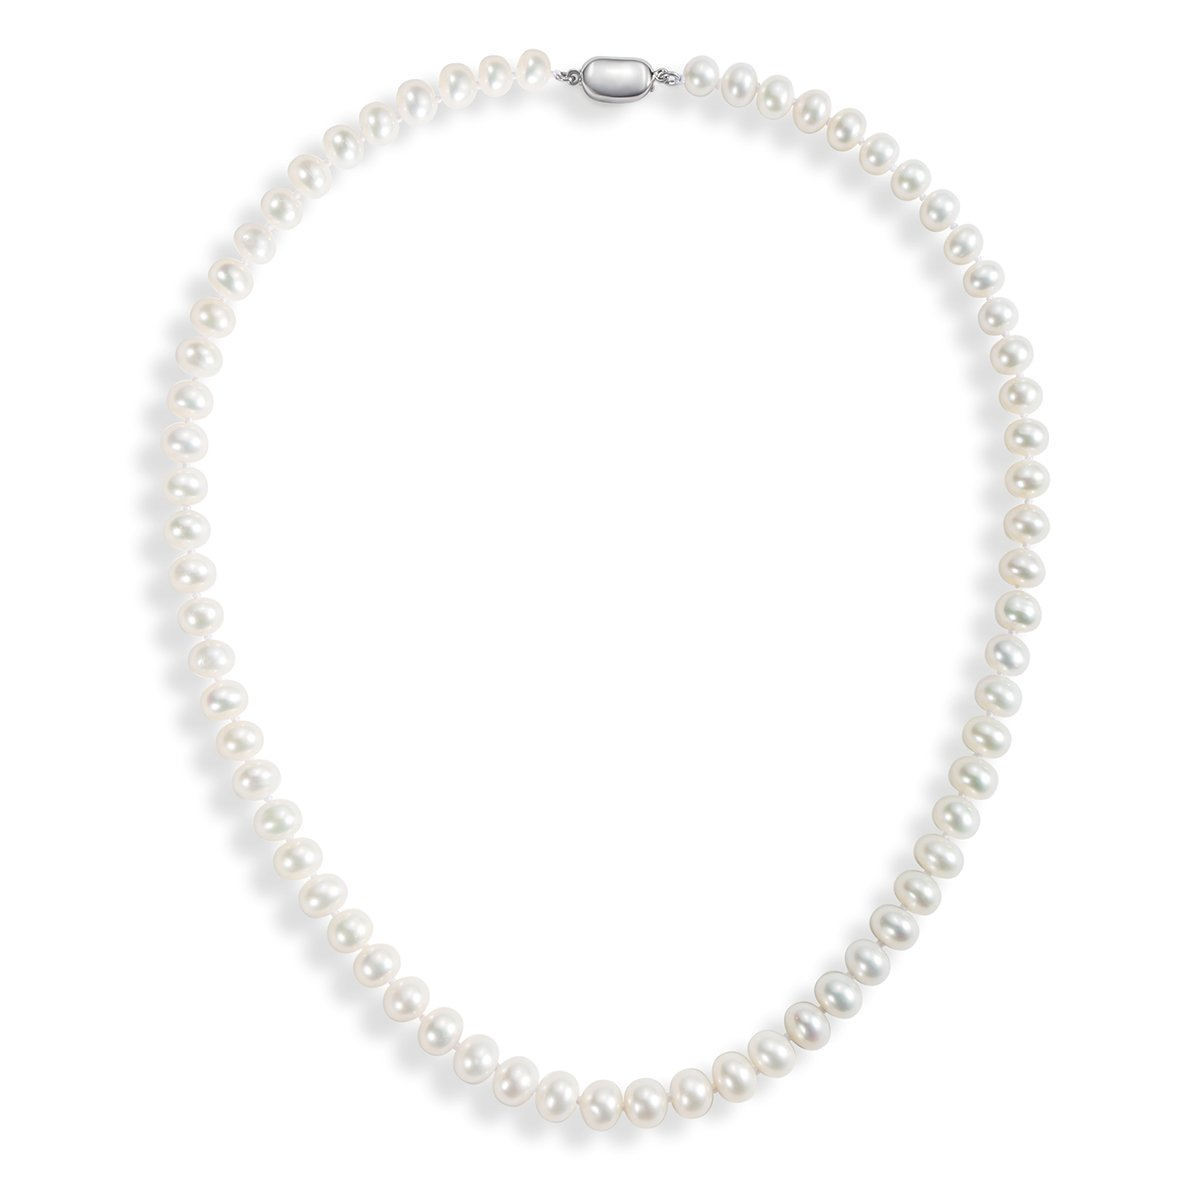 Carleen AA Quality Round White Natural Freshwater Cultured Pearl Strand Necklace for Women Girls with 925 Sterling Silver Buckle, 18'' String (7.0-7.5mm)